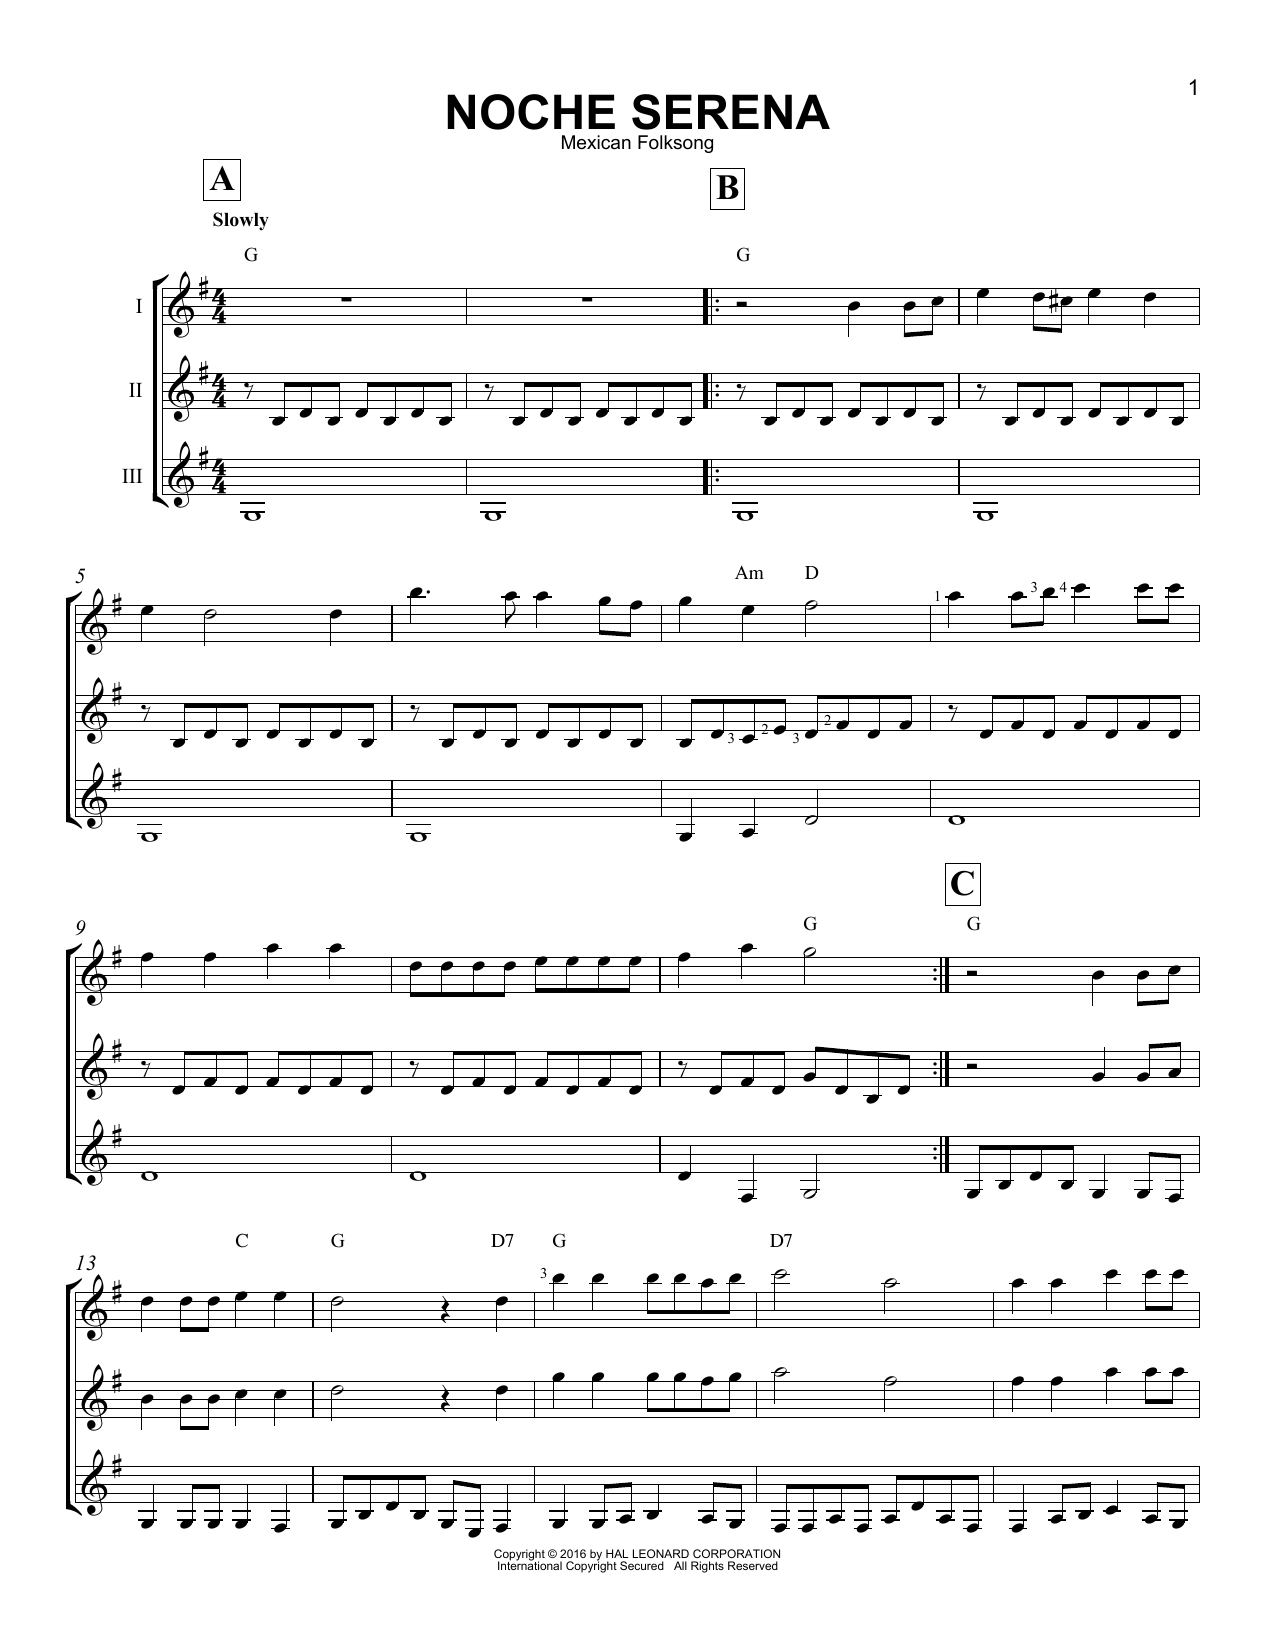 Mexican Folksong Noche Serena sheet music notes and chords. Download Printable PDF.